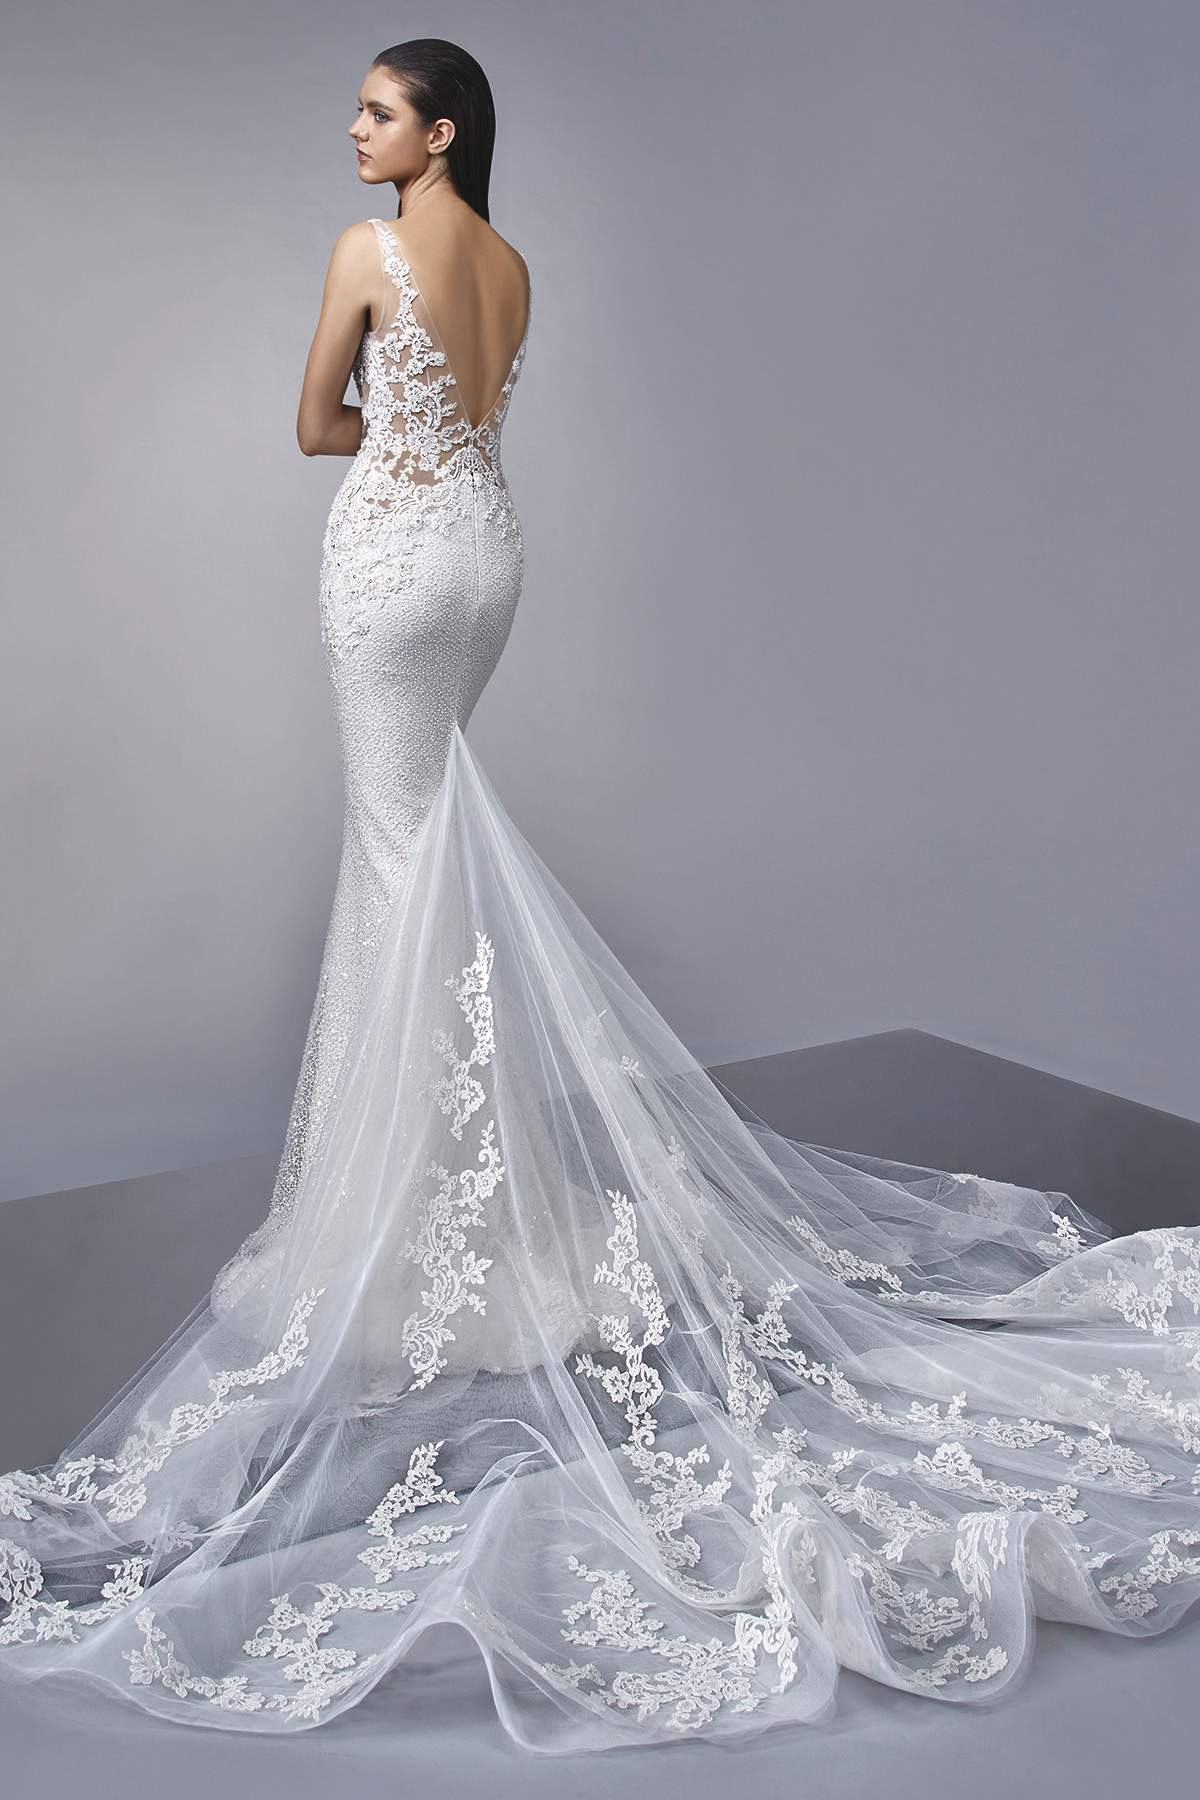 1e3eb35b06765 Miley by Enzoani - Find Your Dream Dress